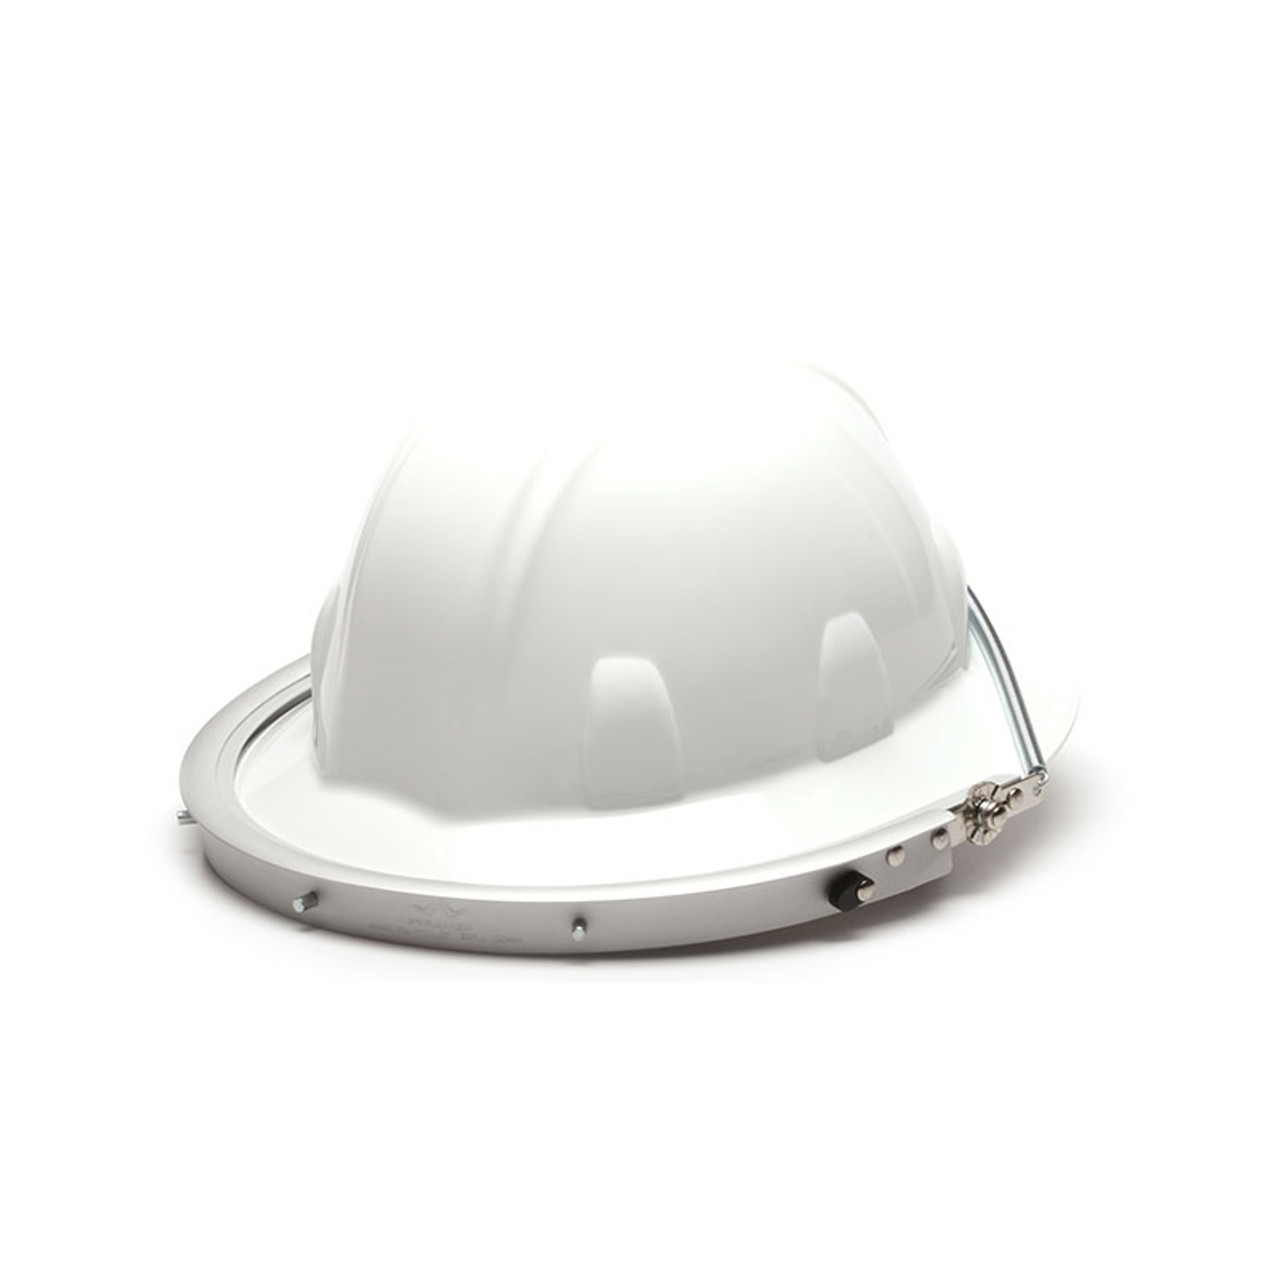 Hhabw for sale online Pyramex Dielectric Full Brim Hard Hat Adapter